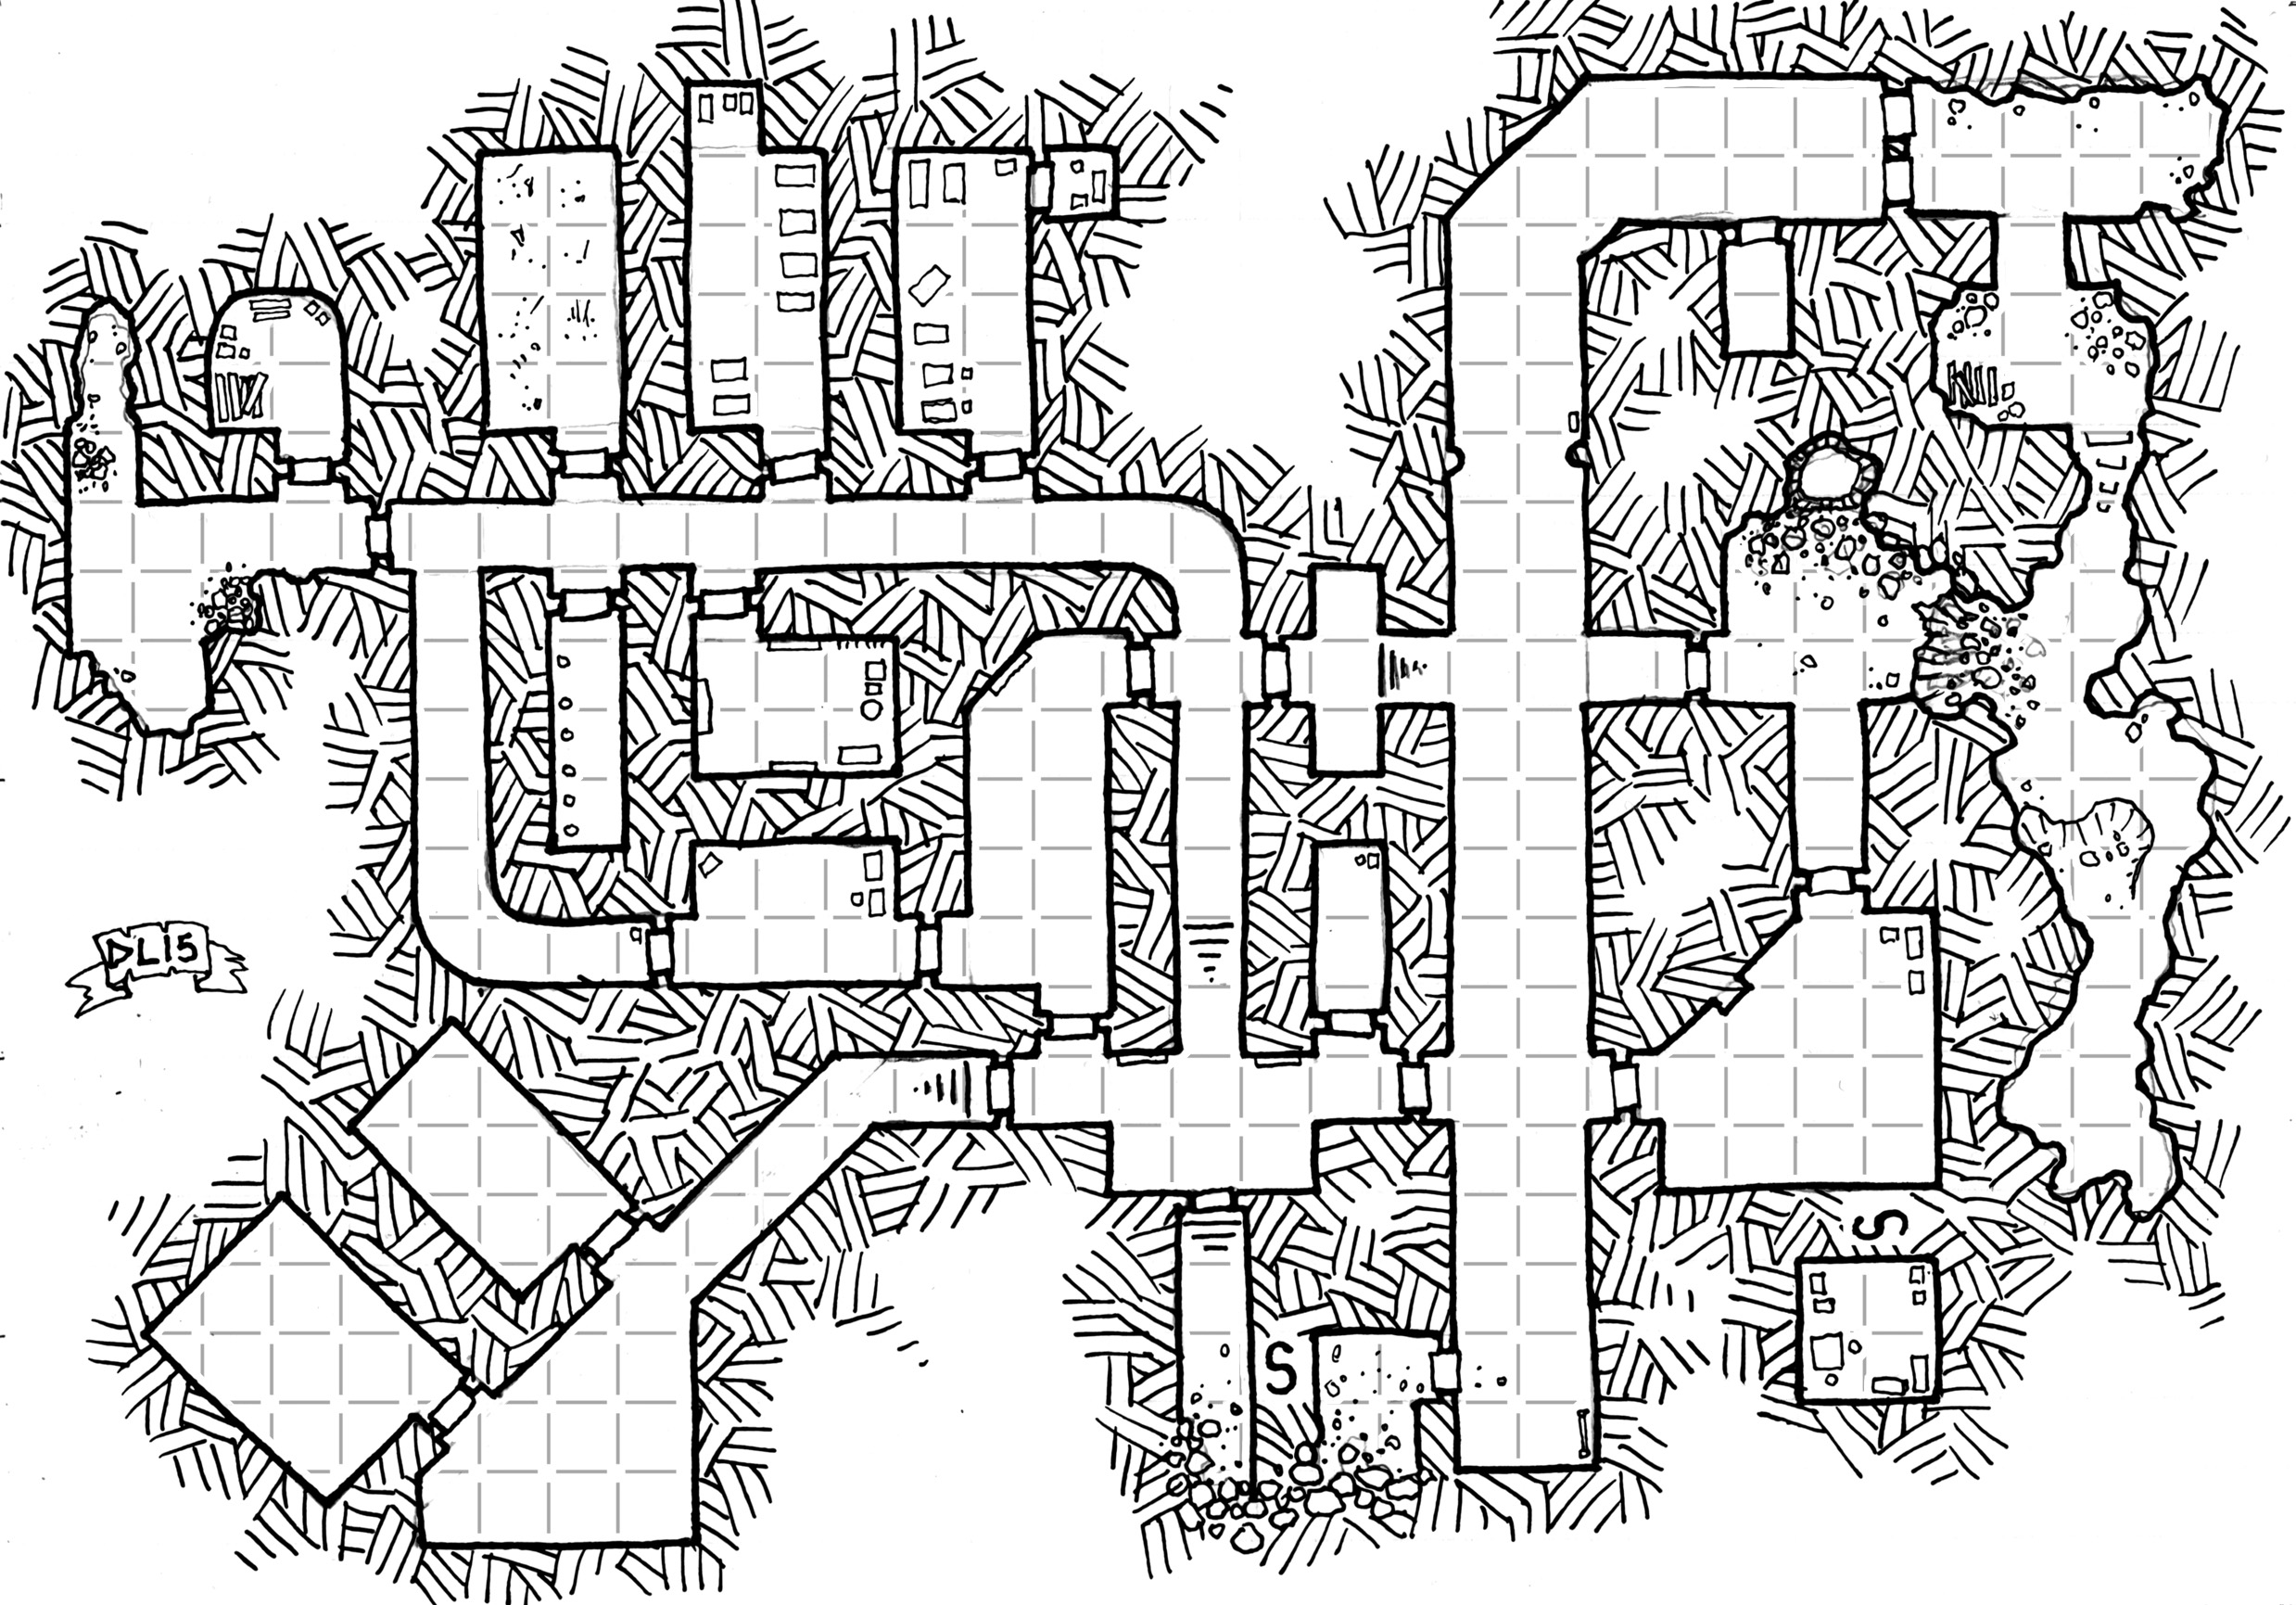 Friday Map The Lost Base Dyson S Dodecahedron